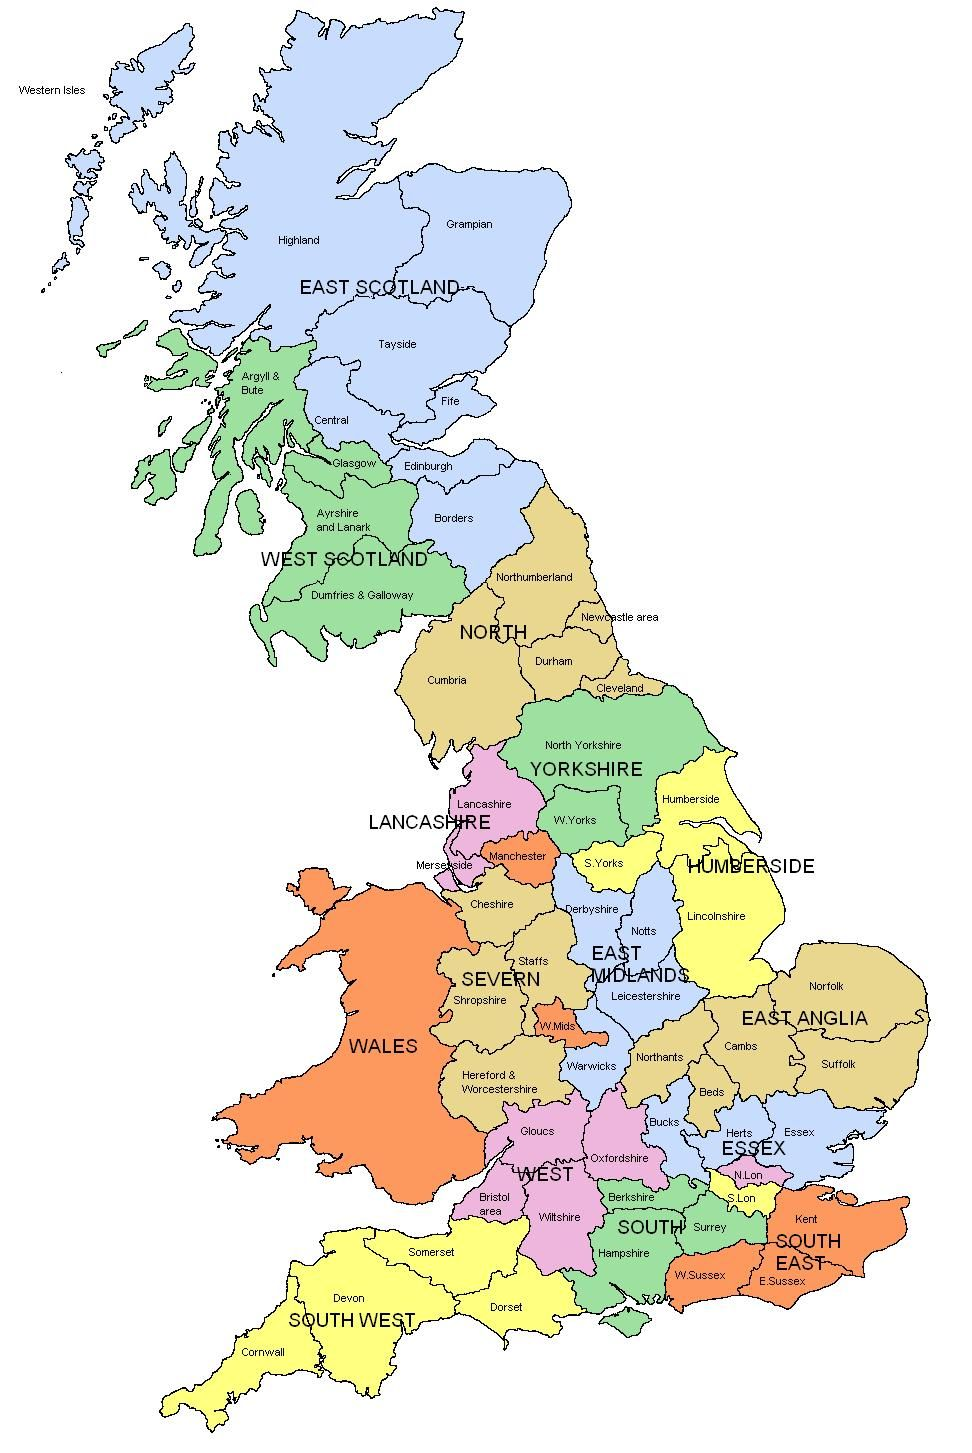 Map Of England And Wales.Map Of Regions And Counties Of England Wales Scotland I Know Is